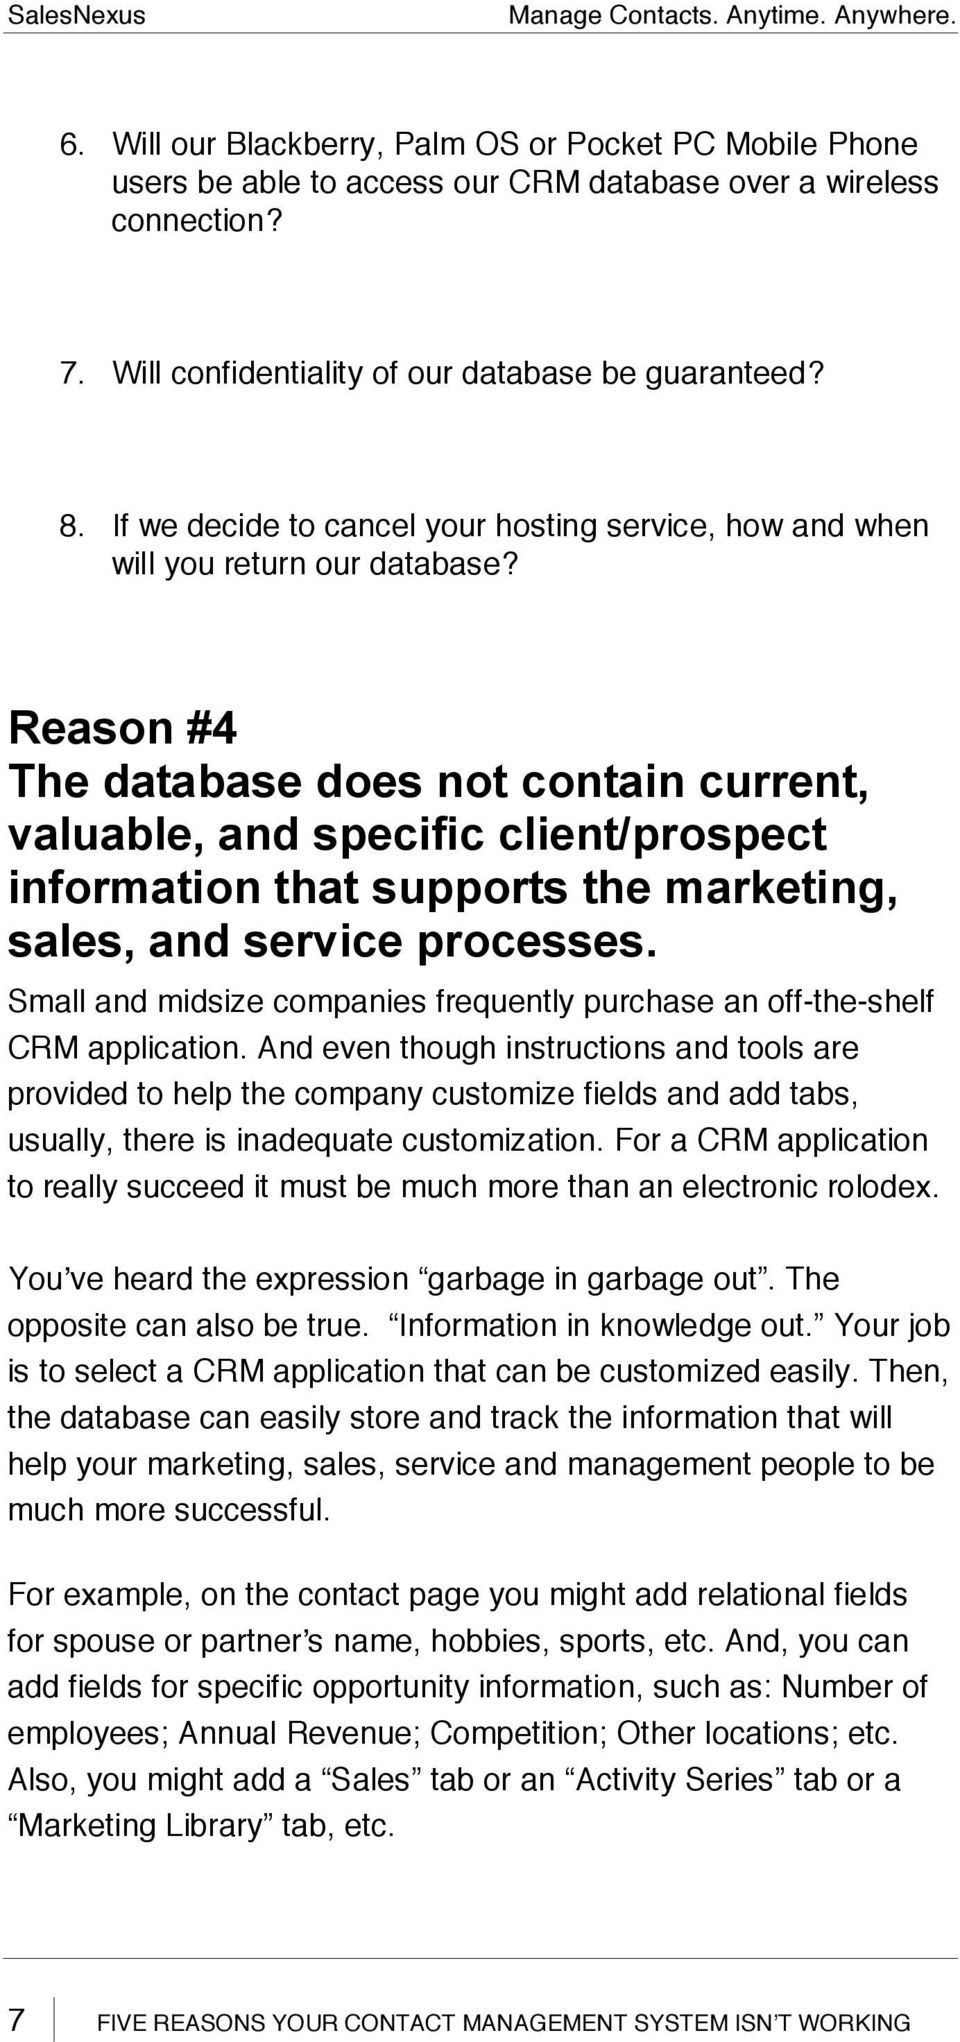 Reason #4 The database does not contain current, valuable, and specific client/prospect information that supports the marketing, sales, and service processes.